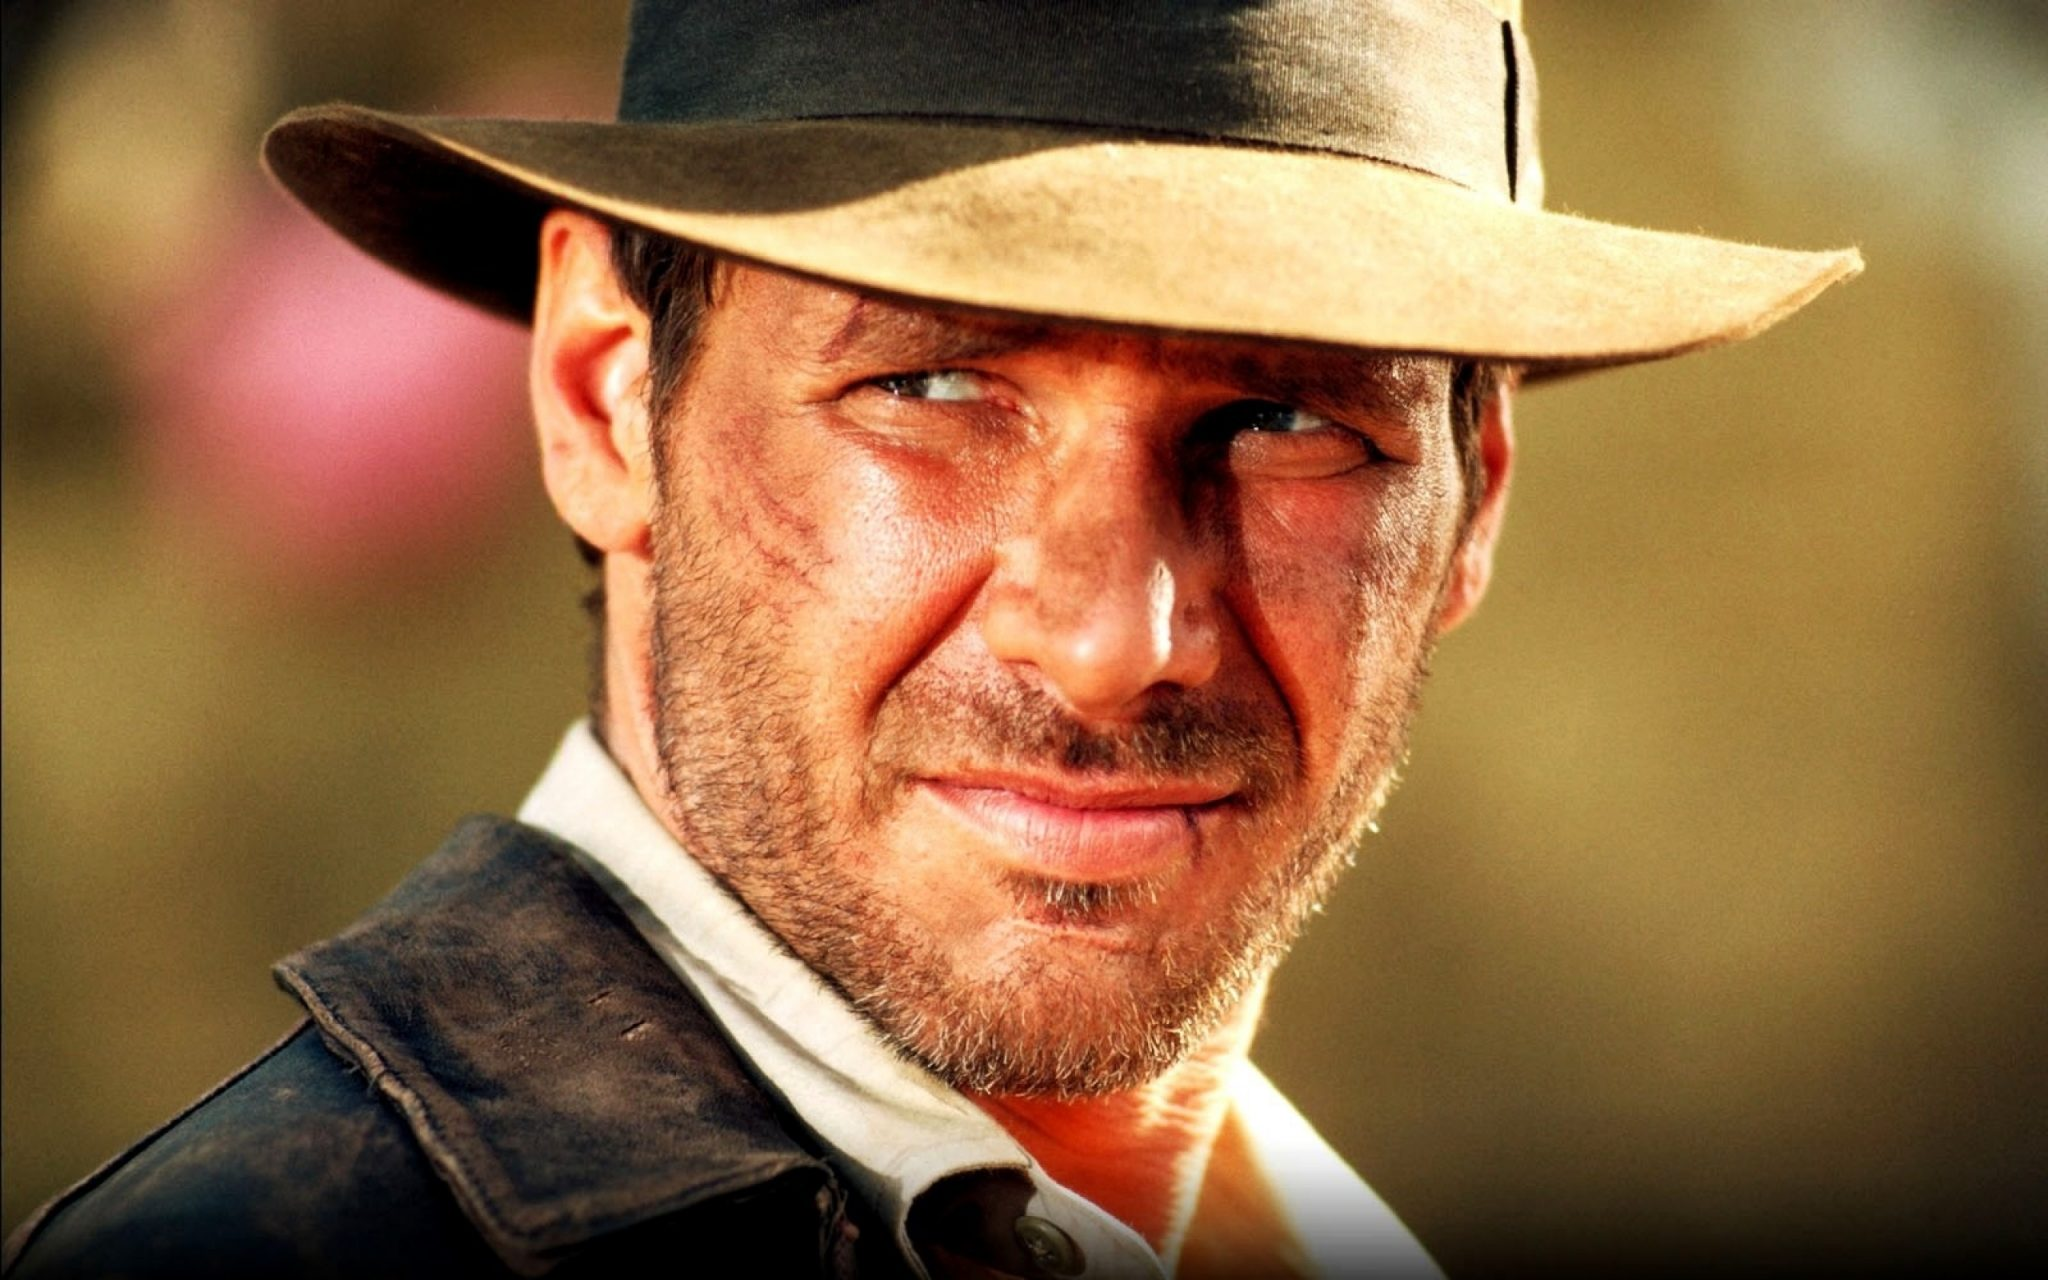 indiana_jones_men_harrison_for_2560x1600_miscellaneoushi.com (2)